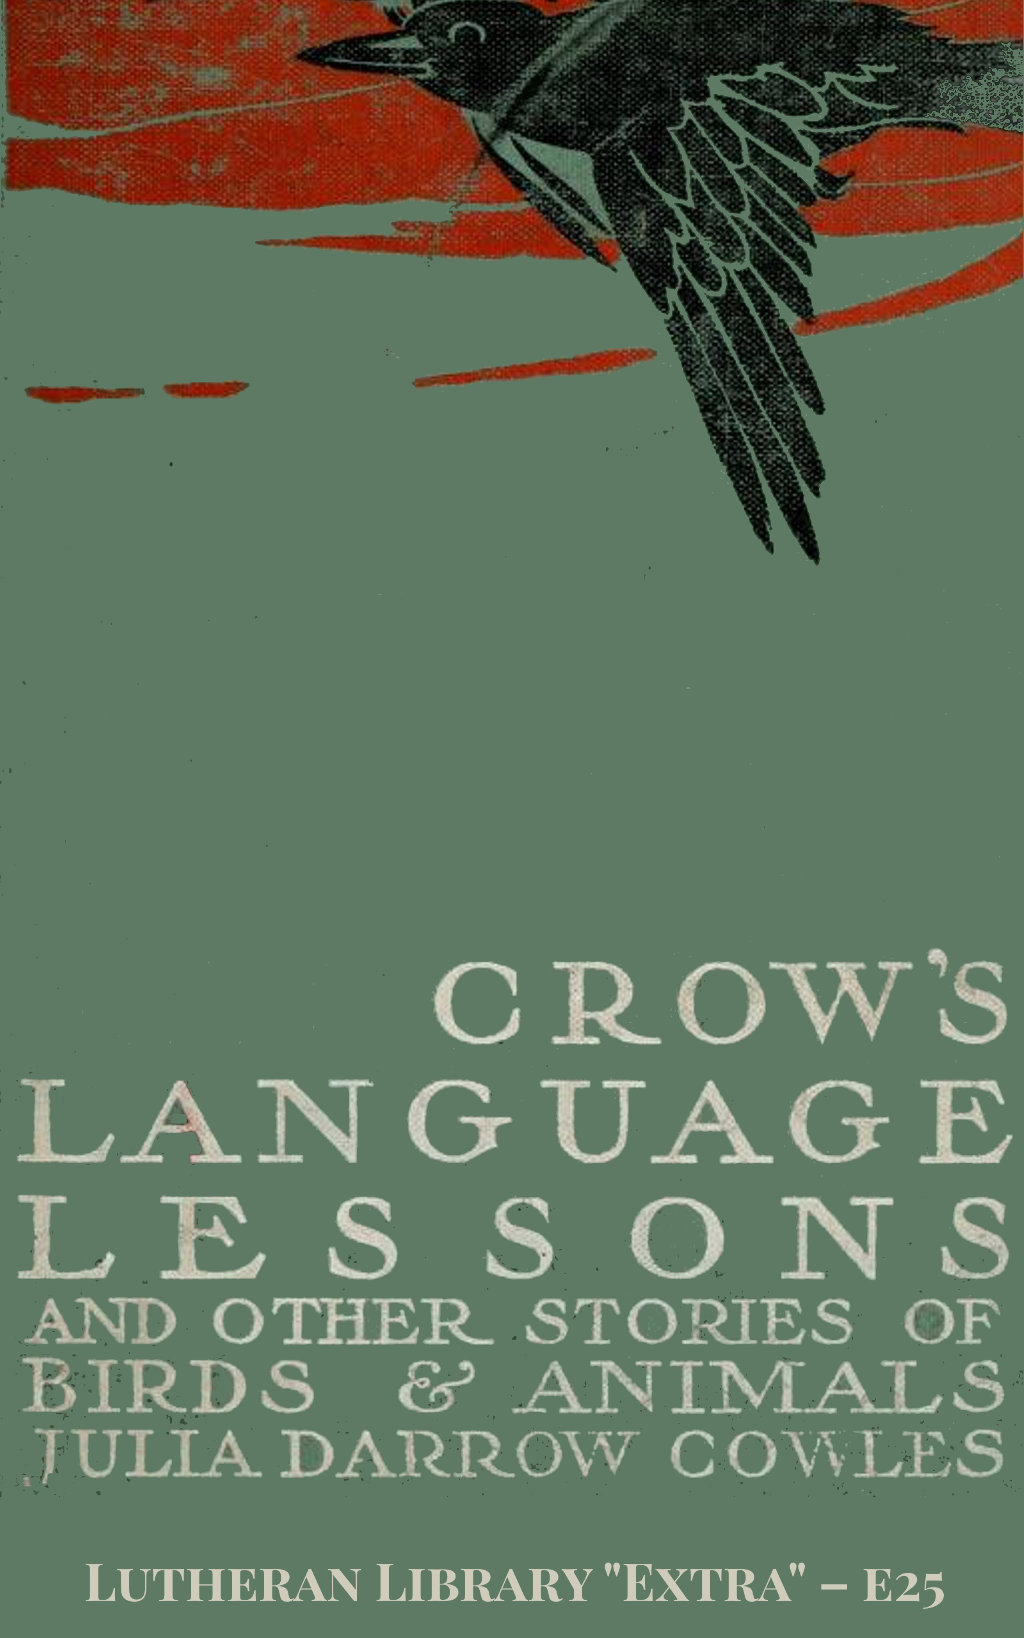 Crow's language lessons and other stories of birds and animals by Julia Darrow Cowles